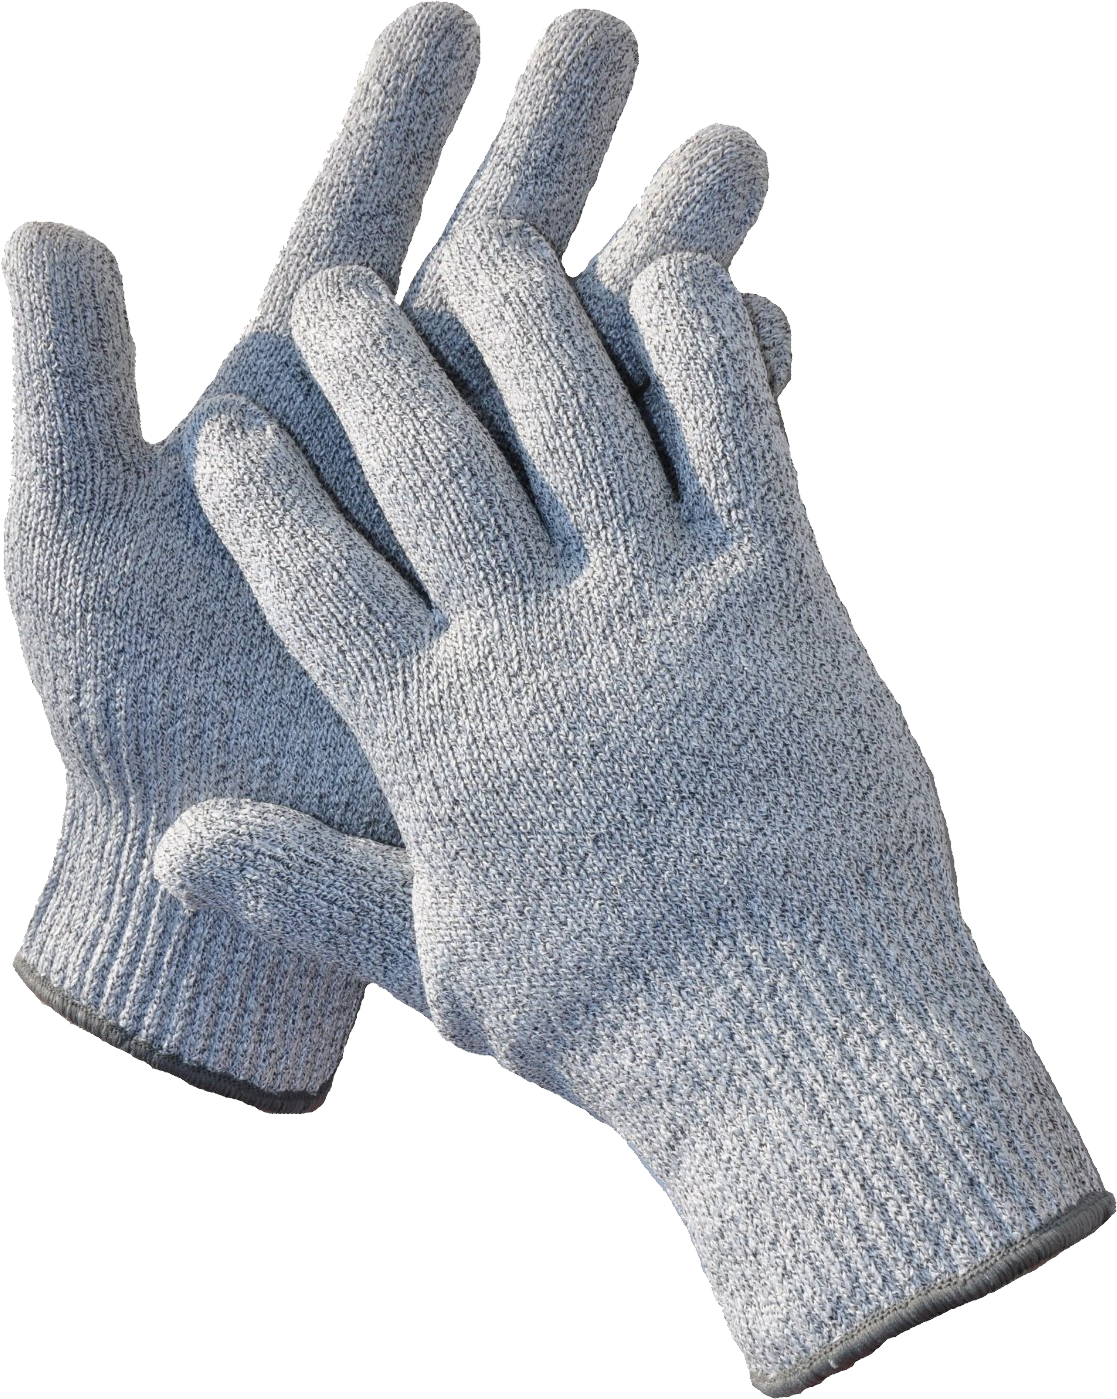 Winter Gloves PNG Image #3042.